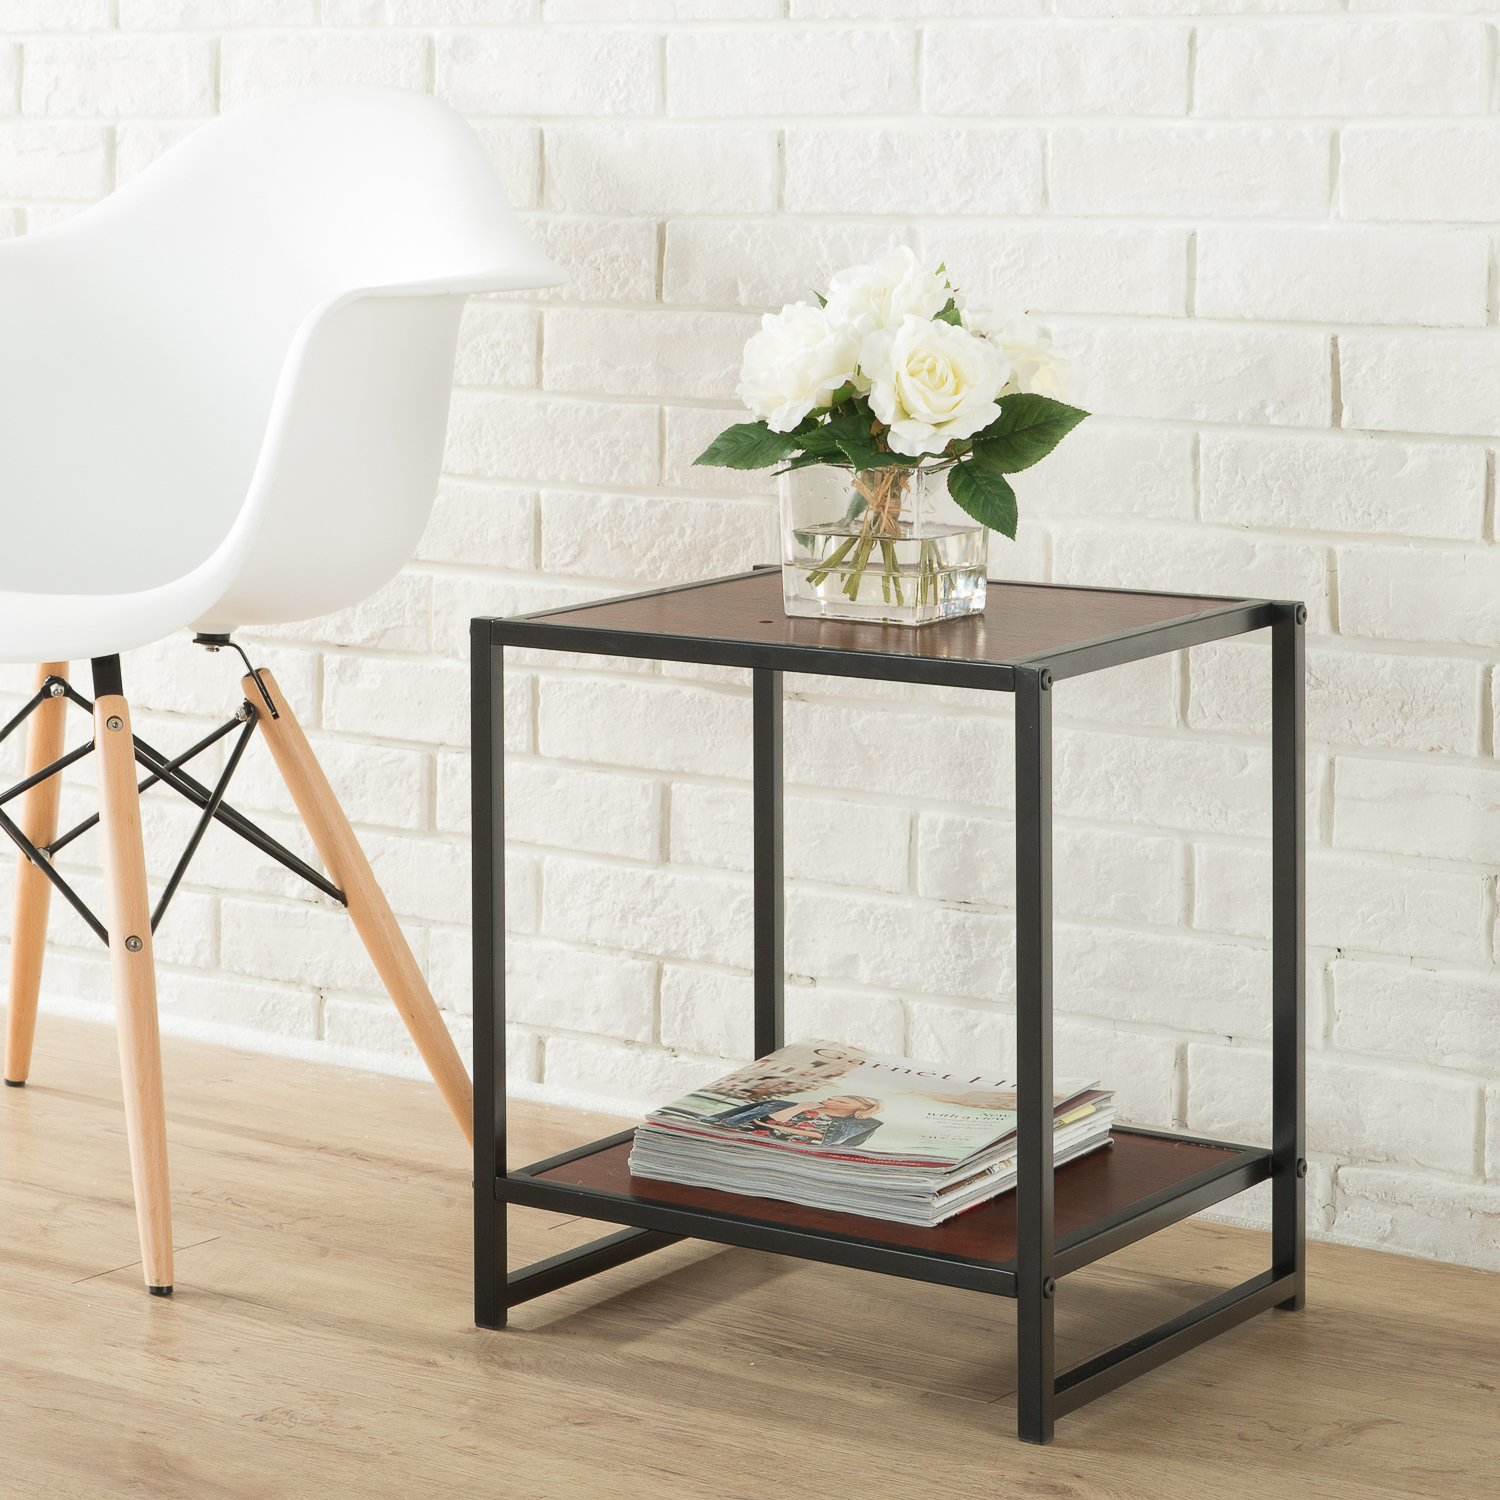 Zinus Modern Studio Collection 15 Inch Square Side Table/End Table/Coffee Table by Zinus